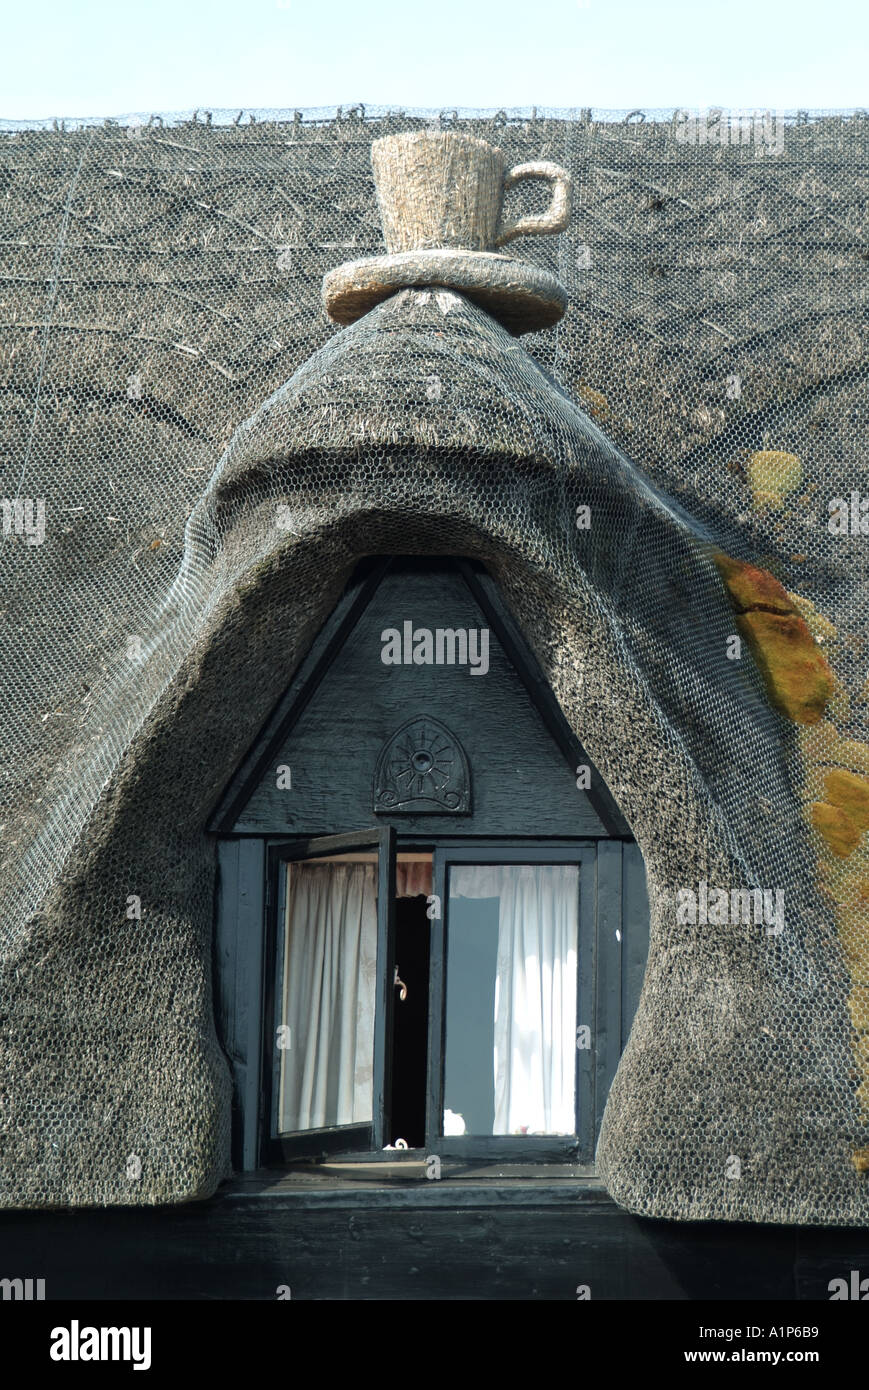 Part Of Thatched Roof Over Caf Showing Eyebrow Window Complete With